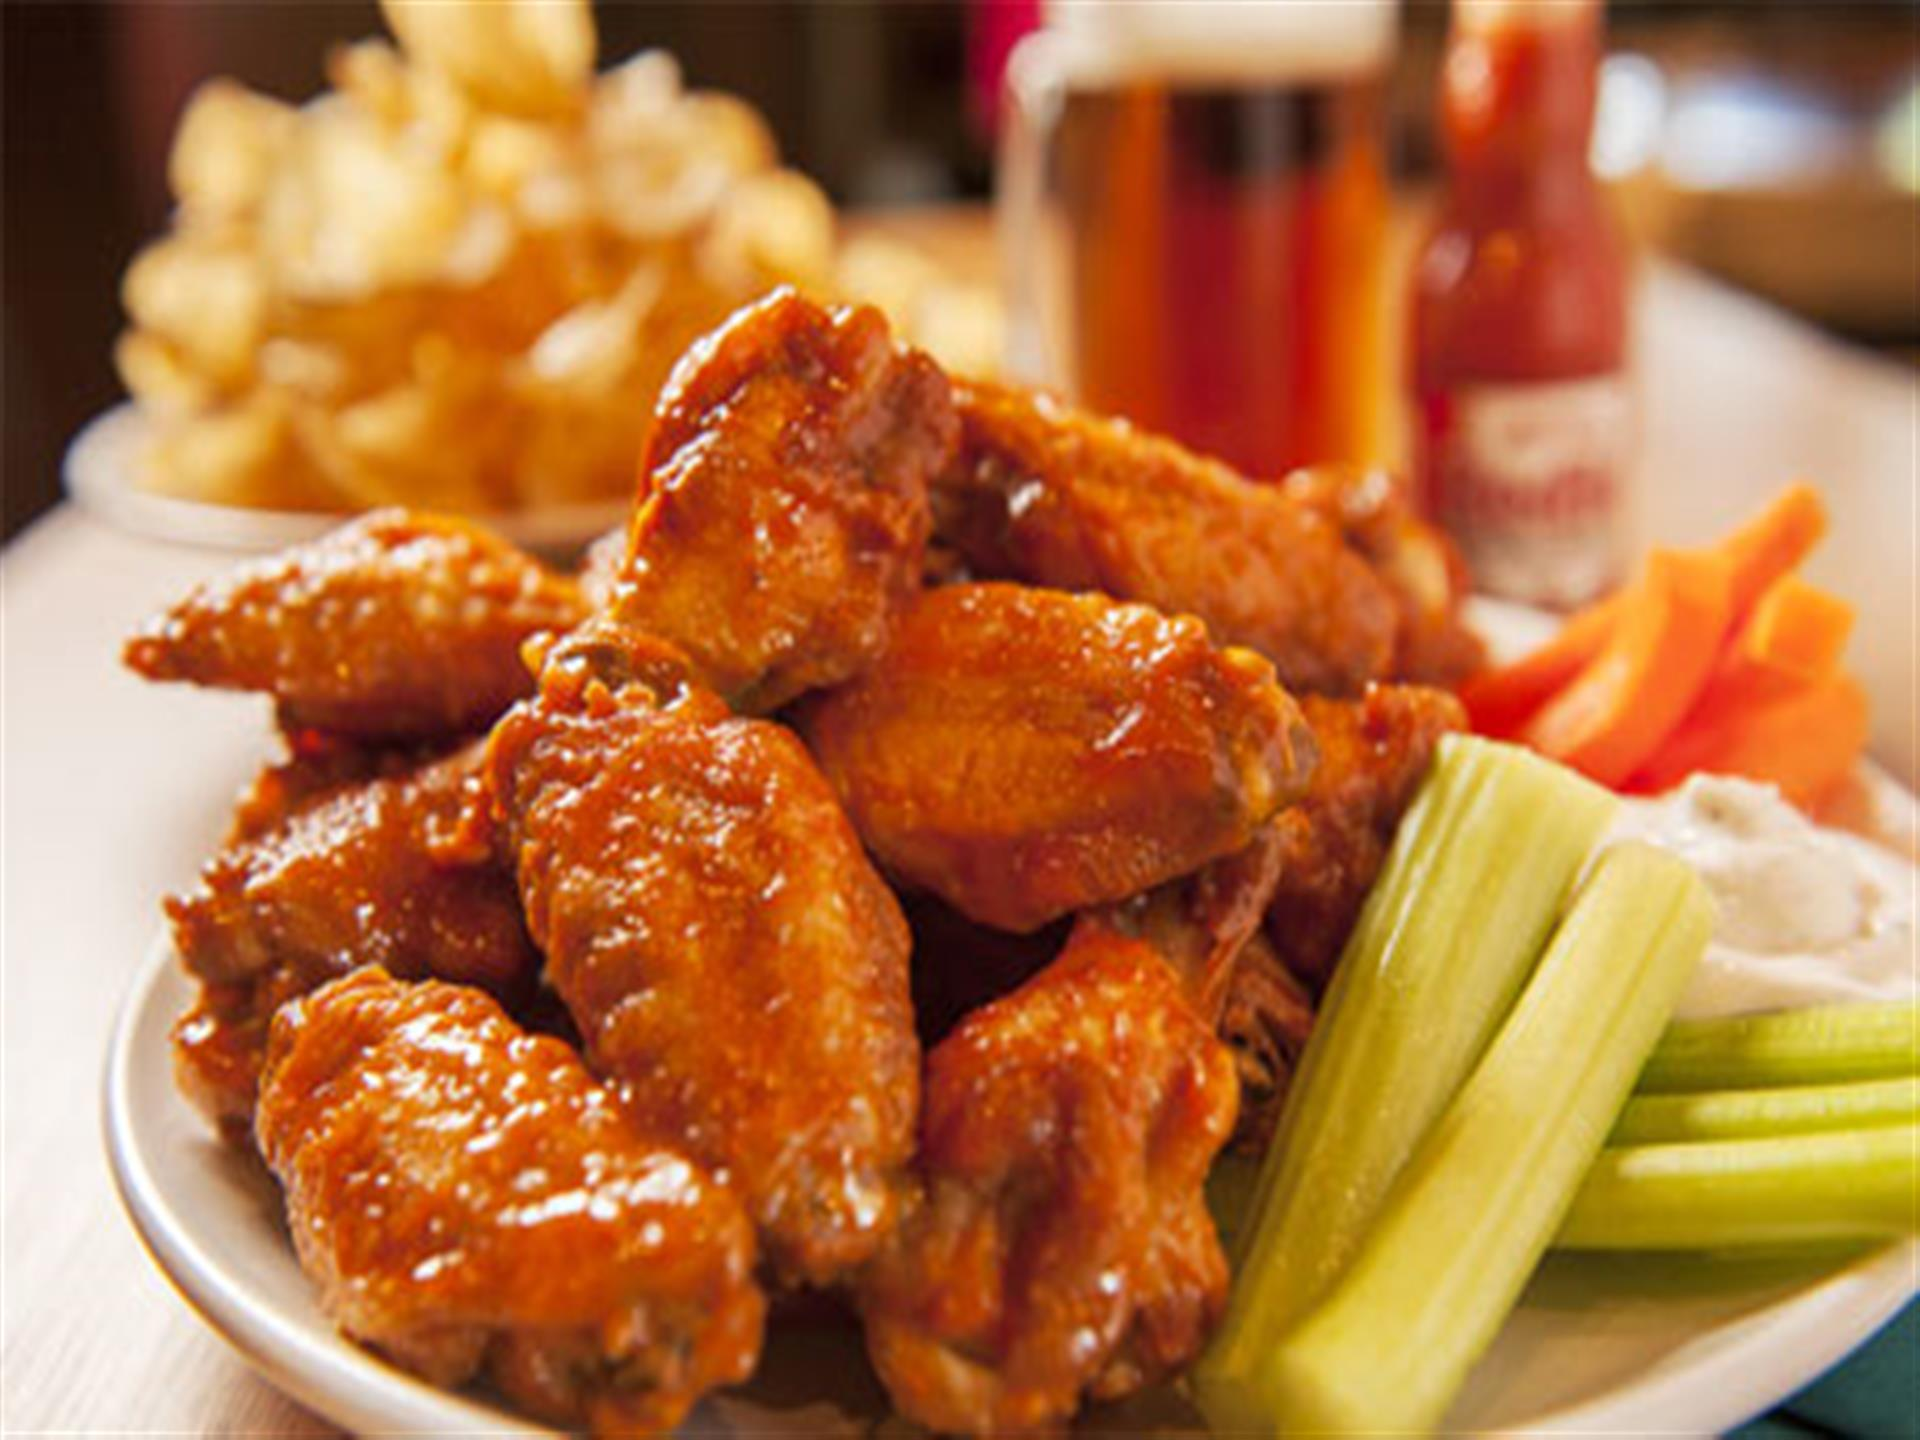 dish of hot wings with celery, carrots and hot sauce and beer in background.